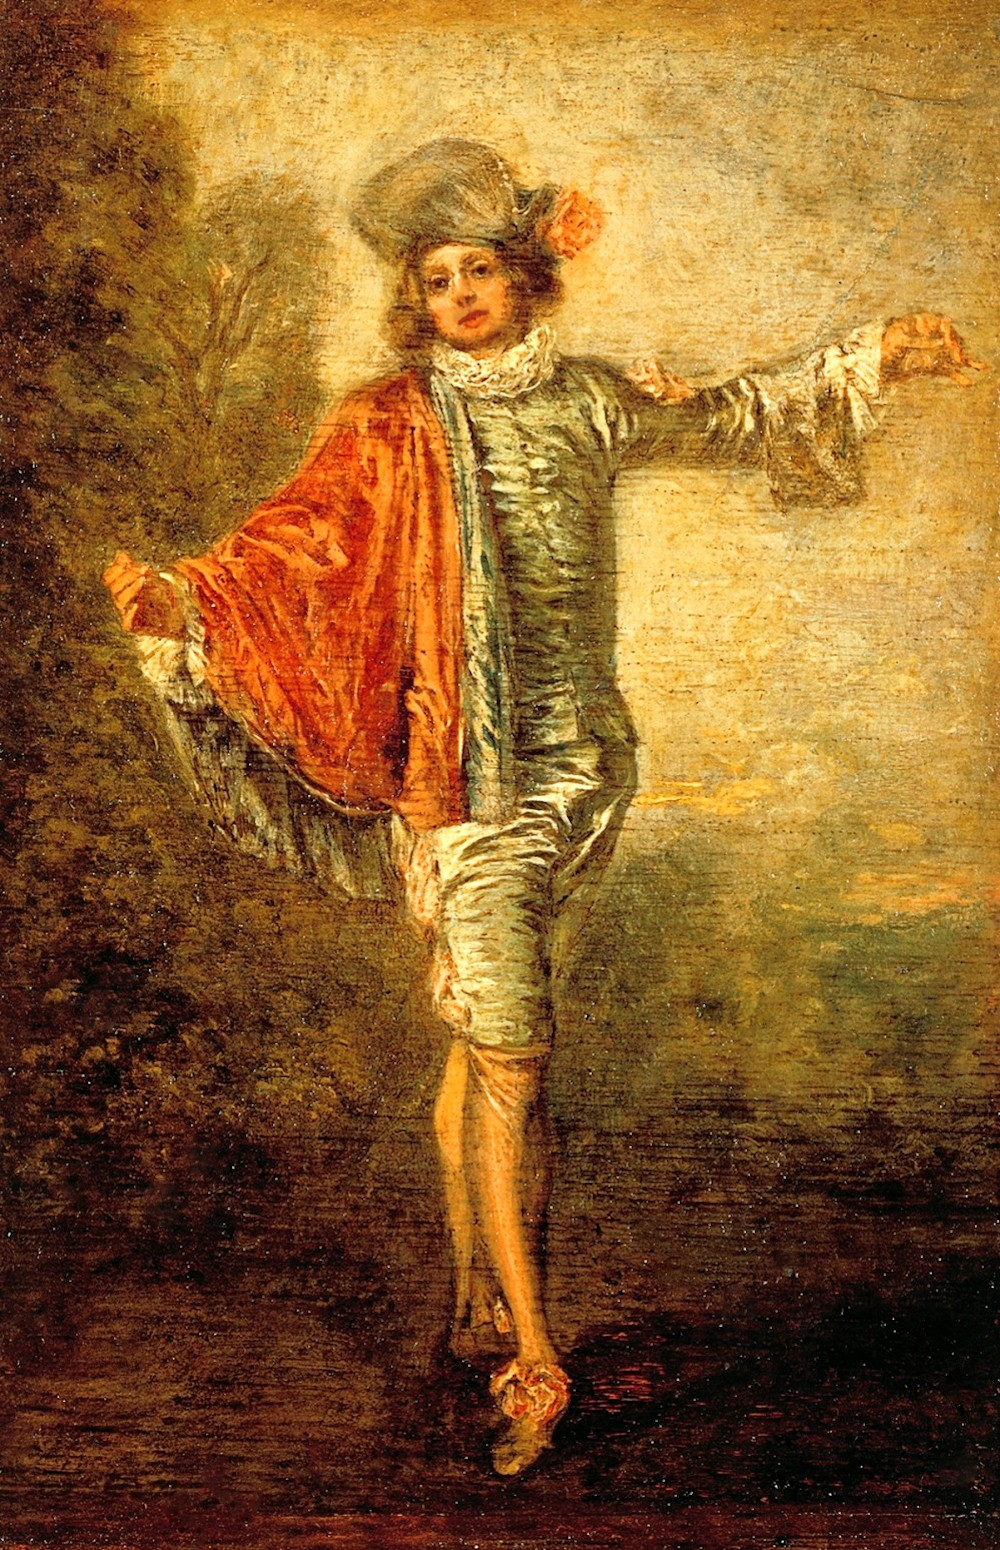 Jean-Antoine Watteau. The Pilgrimage to the Isle of Cythera. 1717-19 » 04  Jean-Antoine Watteau. L'Indifférent. ca 1716